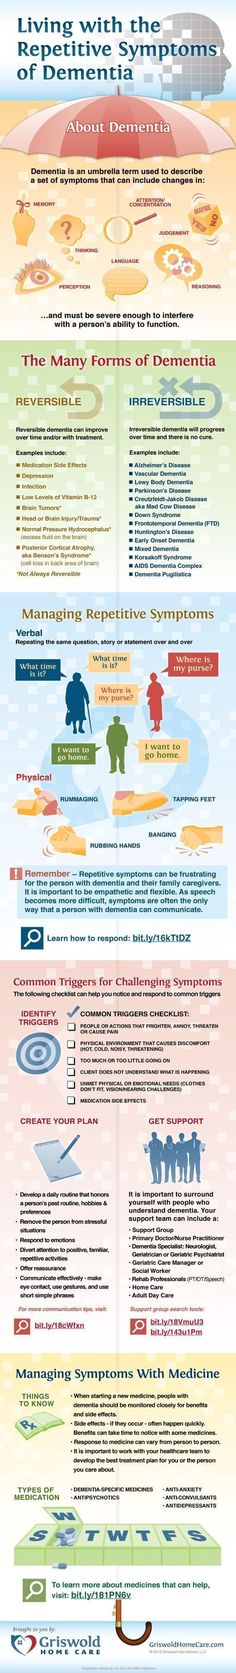 Did you know ❓ Living with the repetitive symptoms of Dementia. Source: Griswold Home Care https://locatemotion.com/?utm_content=buffer680d2&utm_medium=social&utm_source=pinterest.com&utm_campaign=buffer #alzheimers #alzheimersfacts #track #gpstracking #locatemotion #caregiver #dementia #elderlycare #elderlycareinspiration #alzheimerscaregivers #dementiacaregivers